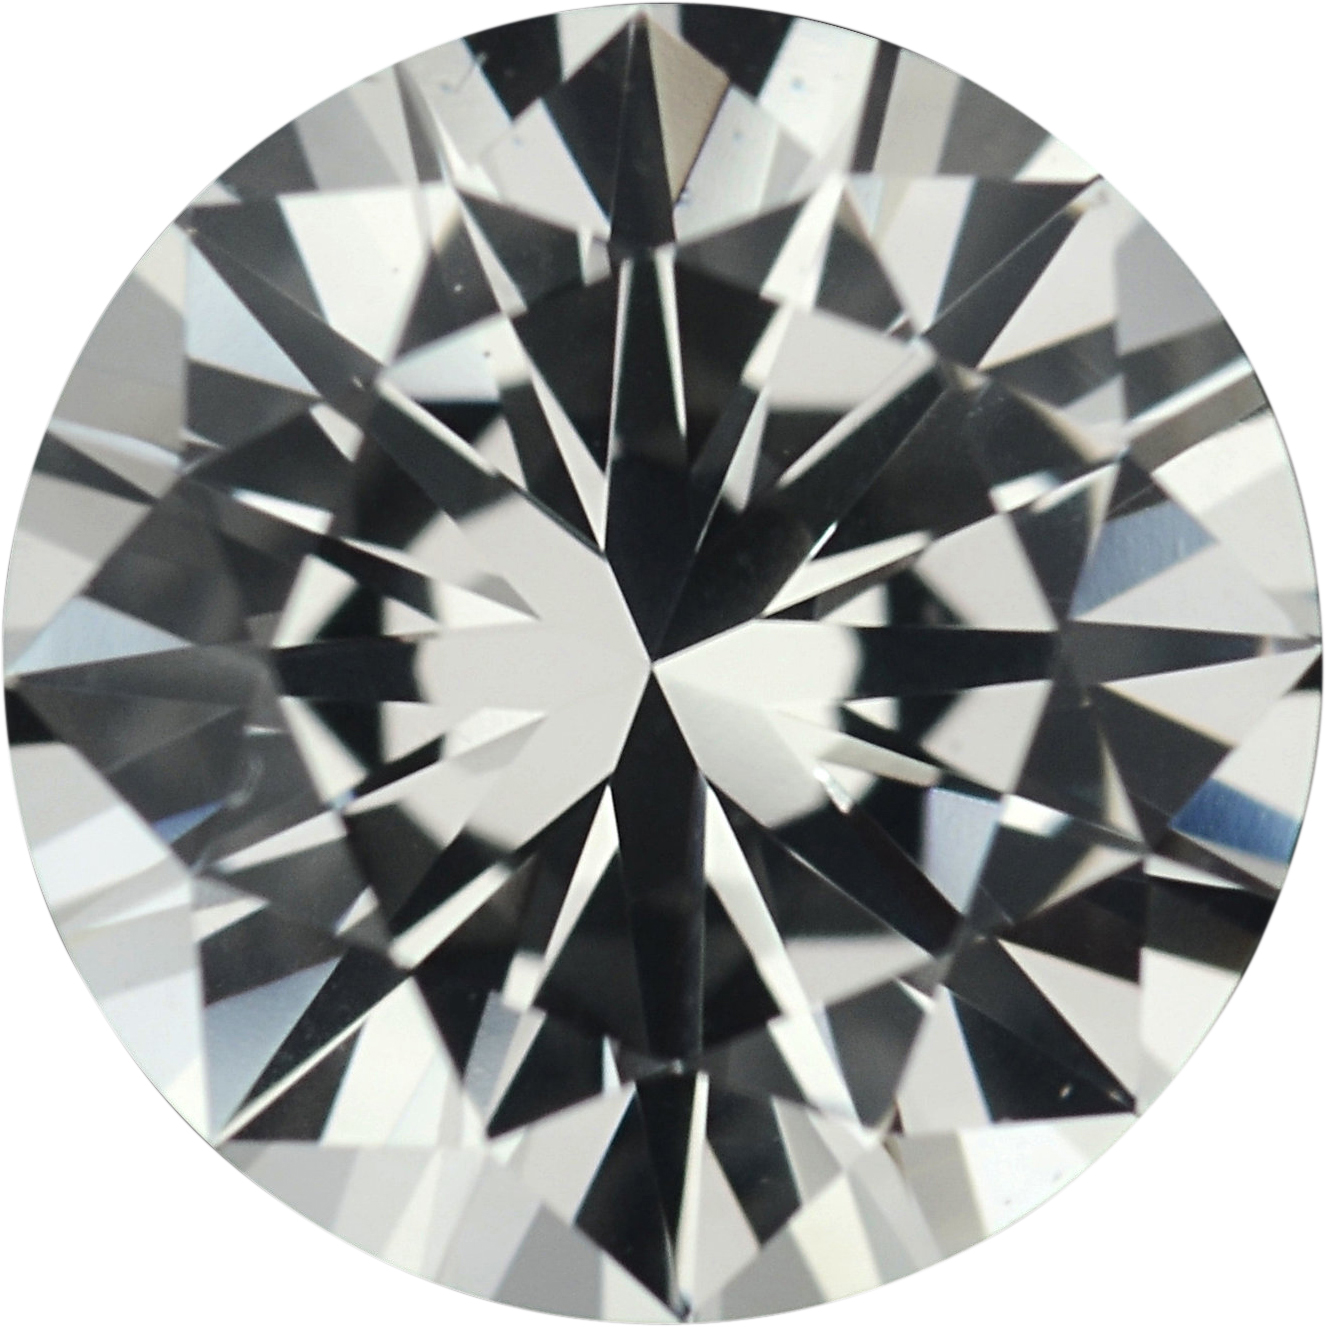 1.3 carats White Loose Sapphire Gemstone in Round Cut, 6.77 mm